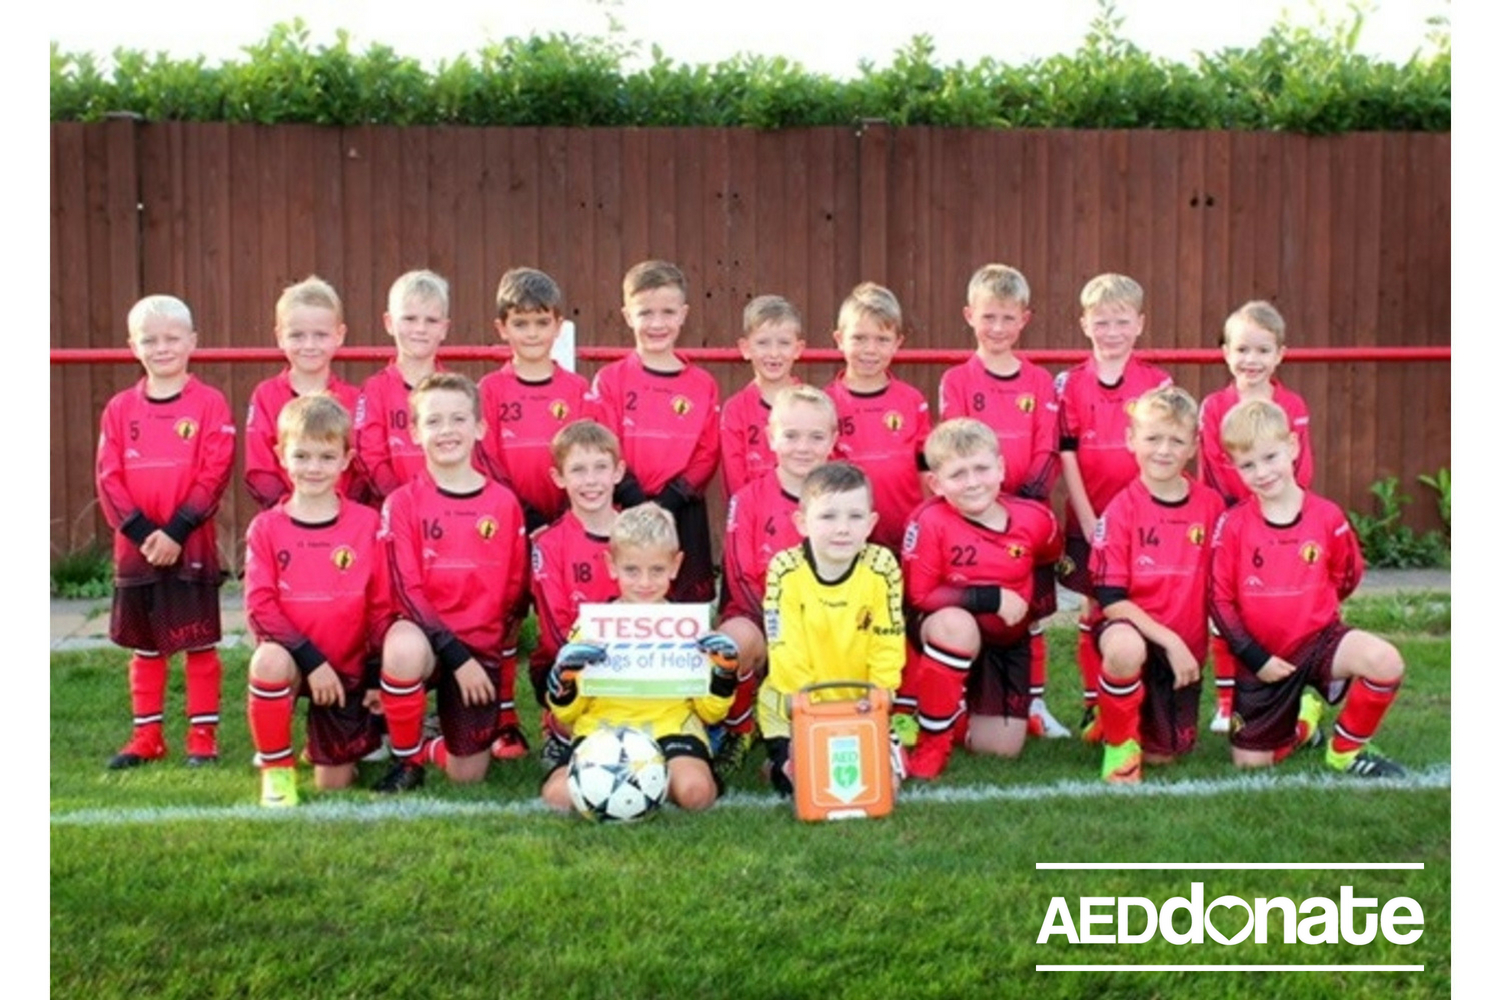 Life-saving defibrillator has been handed over to the Middlewich Town Football Club Under 8's